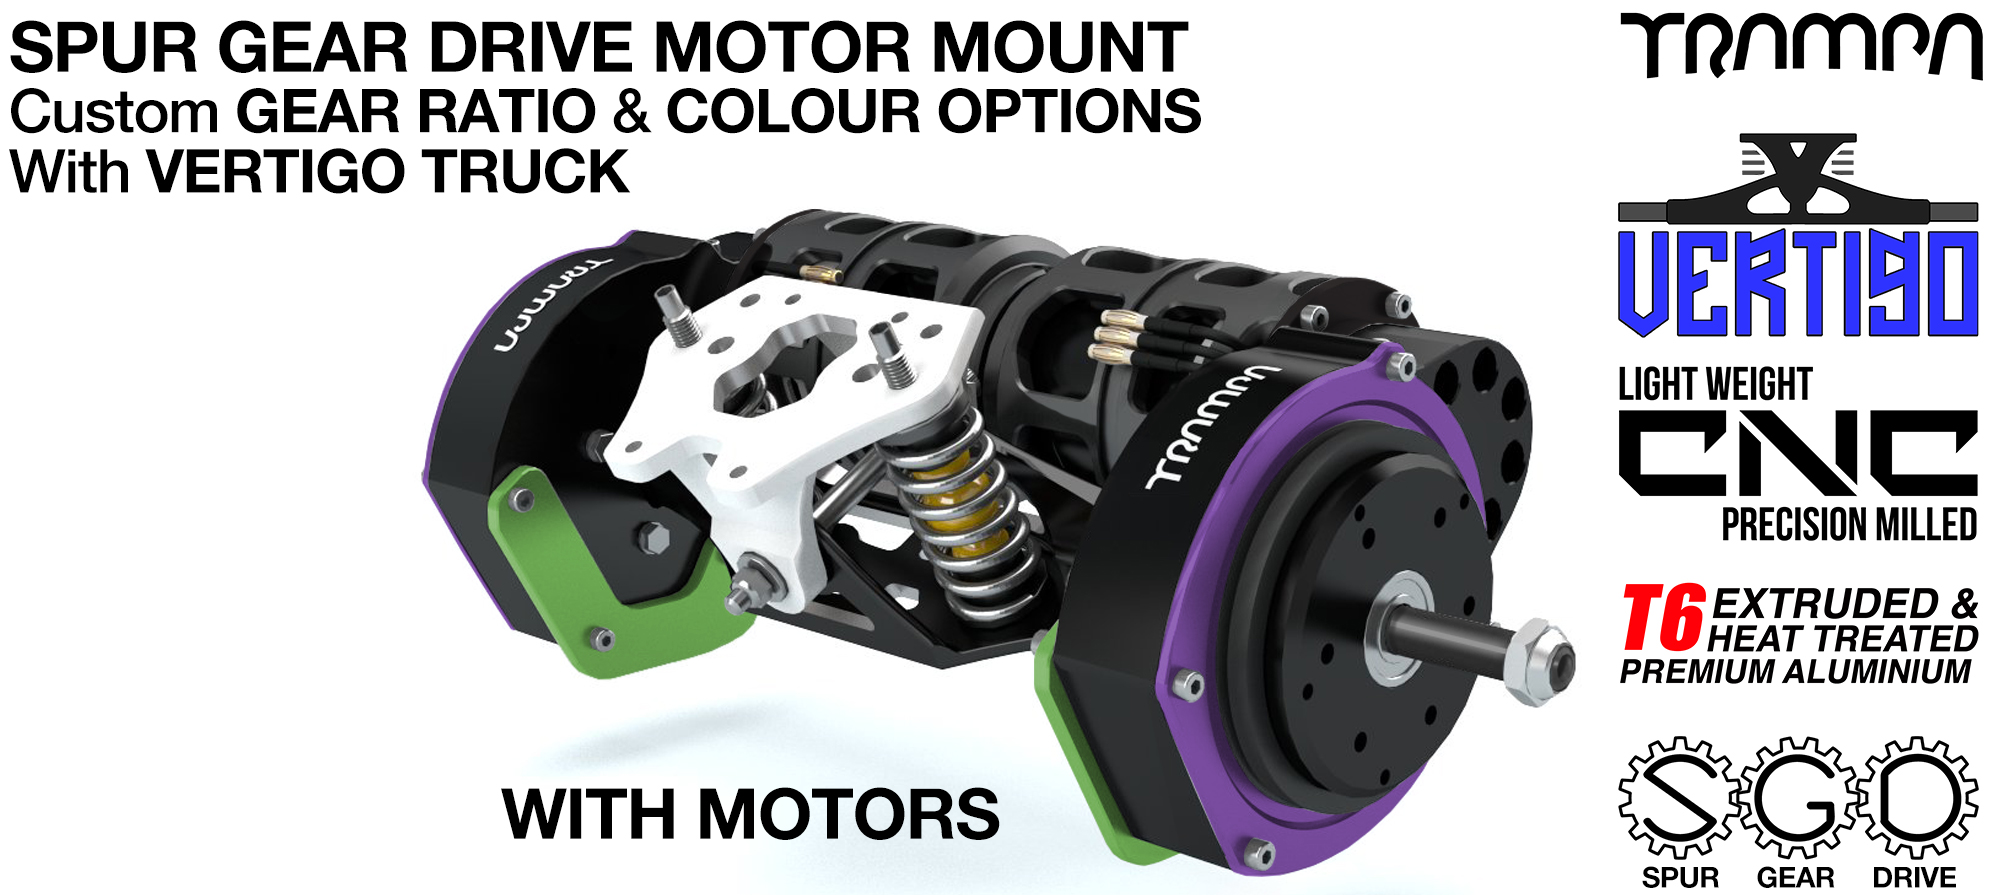 Mountainboard EXTERNAL Spur Gear Drive Motor Mount & VERTIGO Truck with Motors